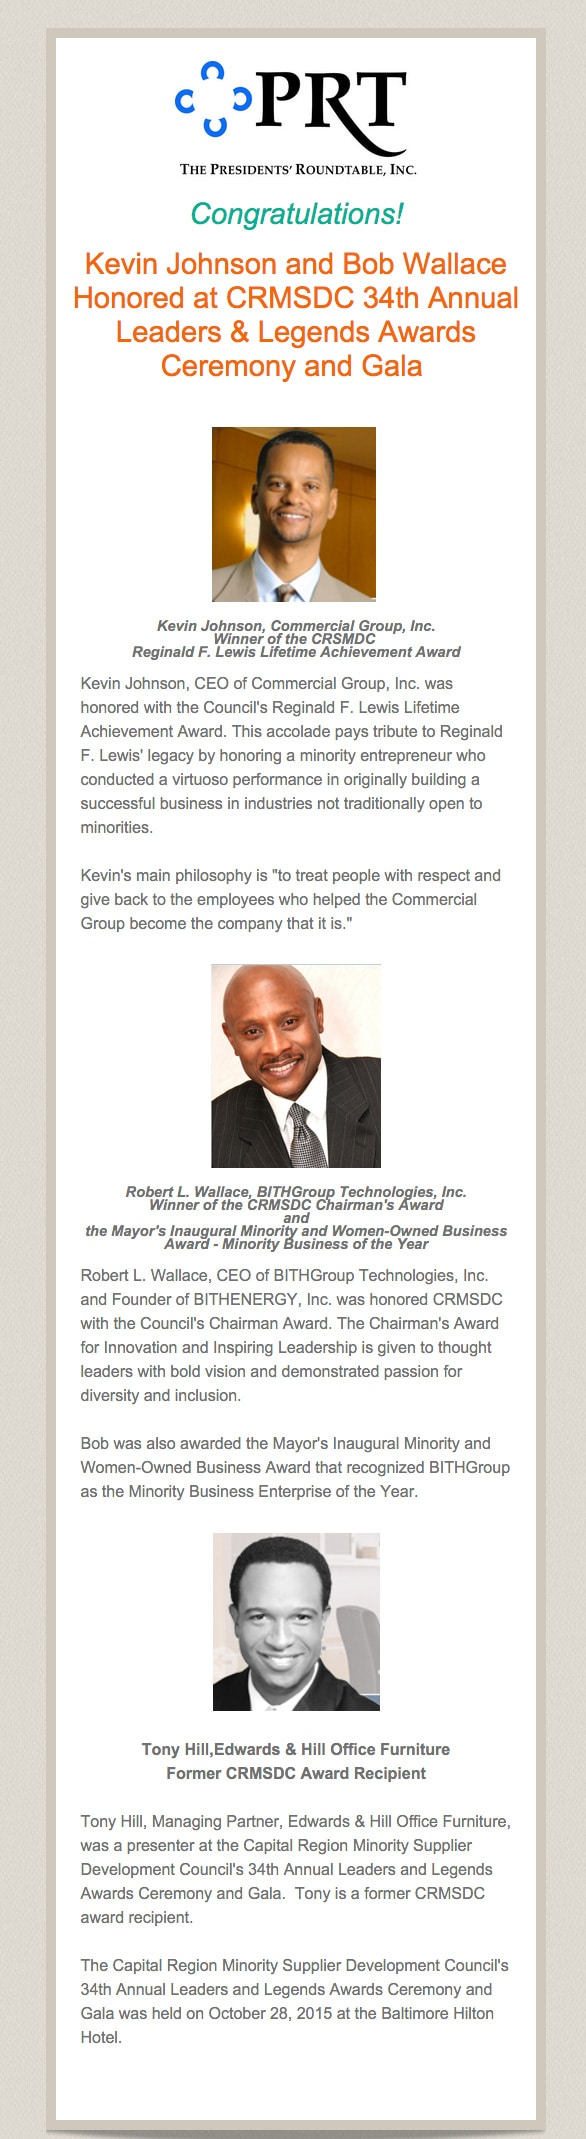 Kevin Johnson and Bob Wallace Honored at CRMSDC 34th Annual Leaders & Legends Awards Ceremony and Gala